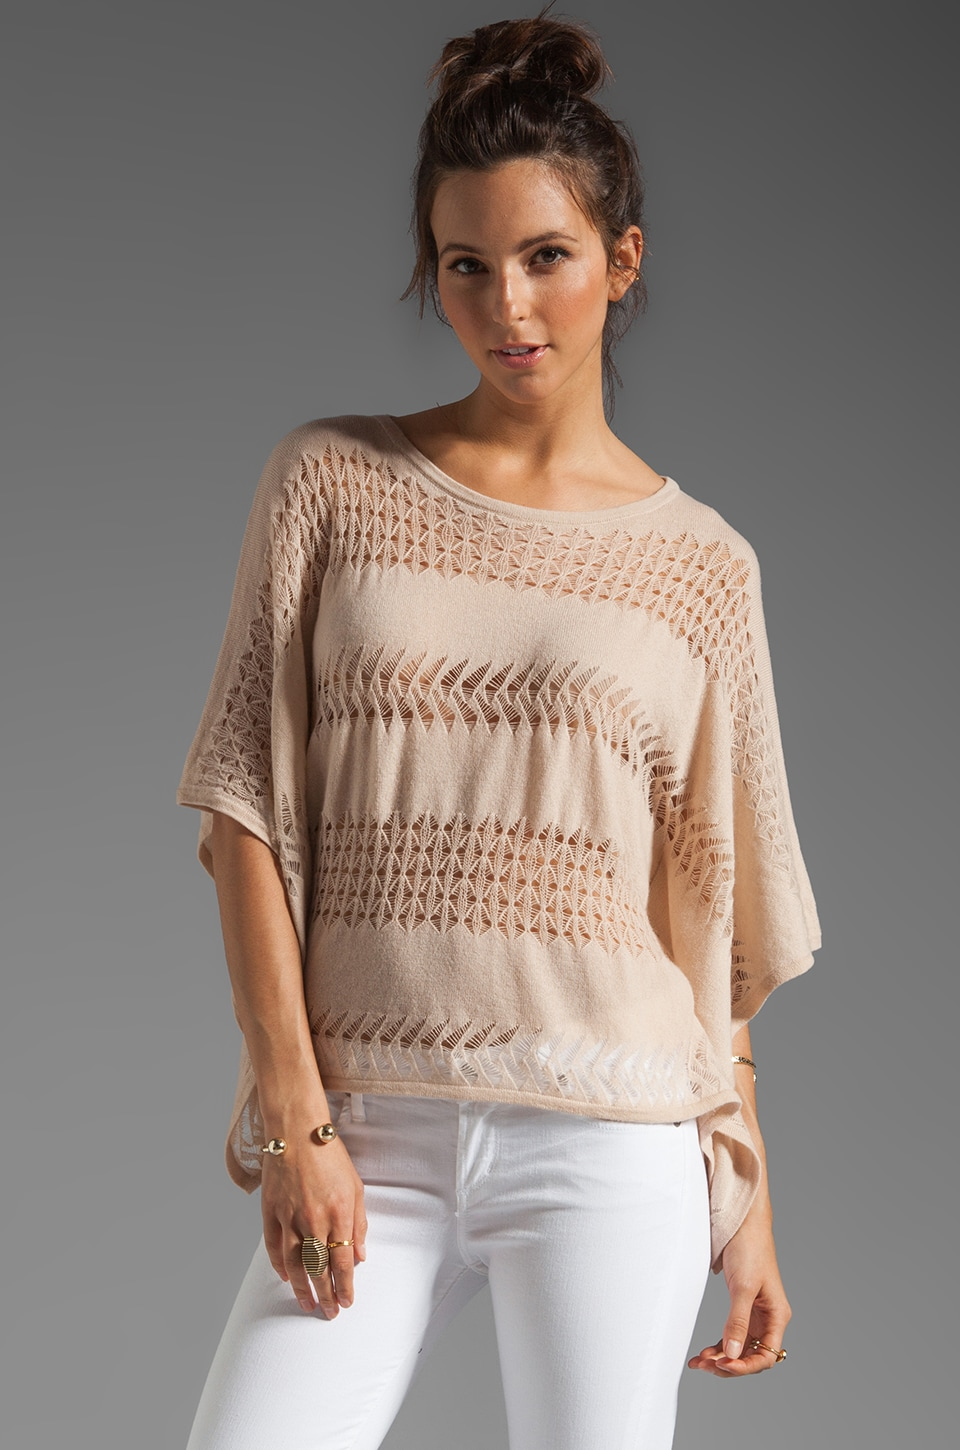 Autumn Cashmere Pointelle Stitched Poncho in Biscotti